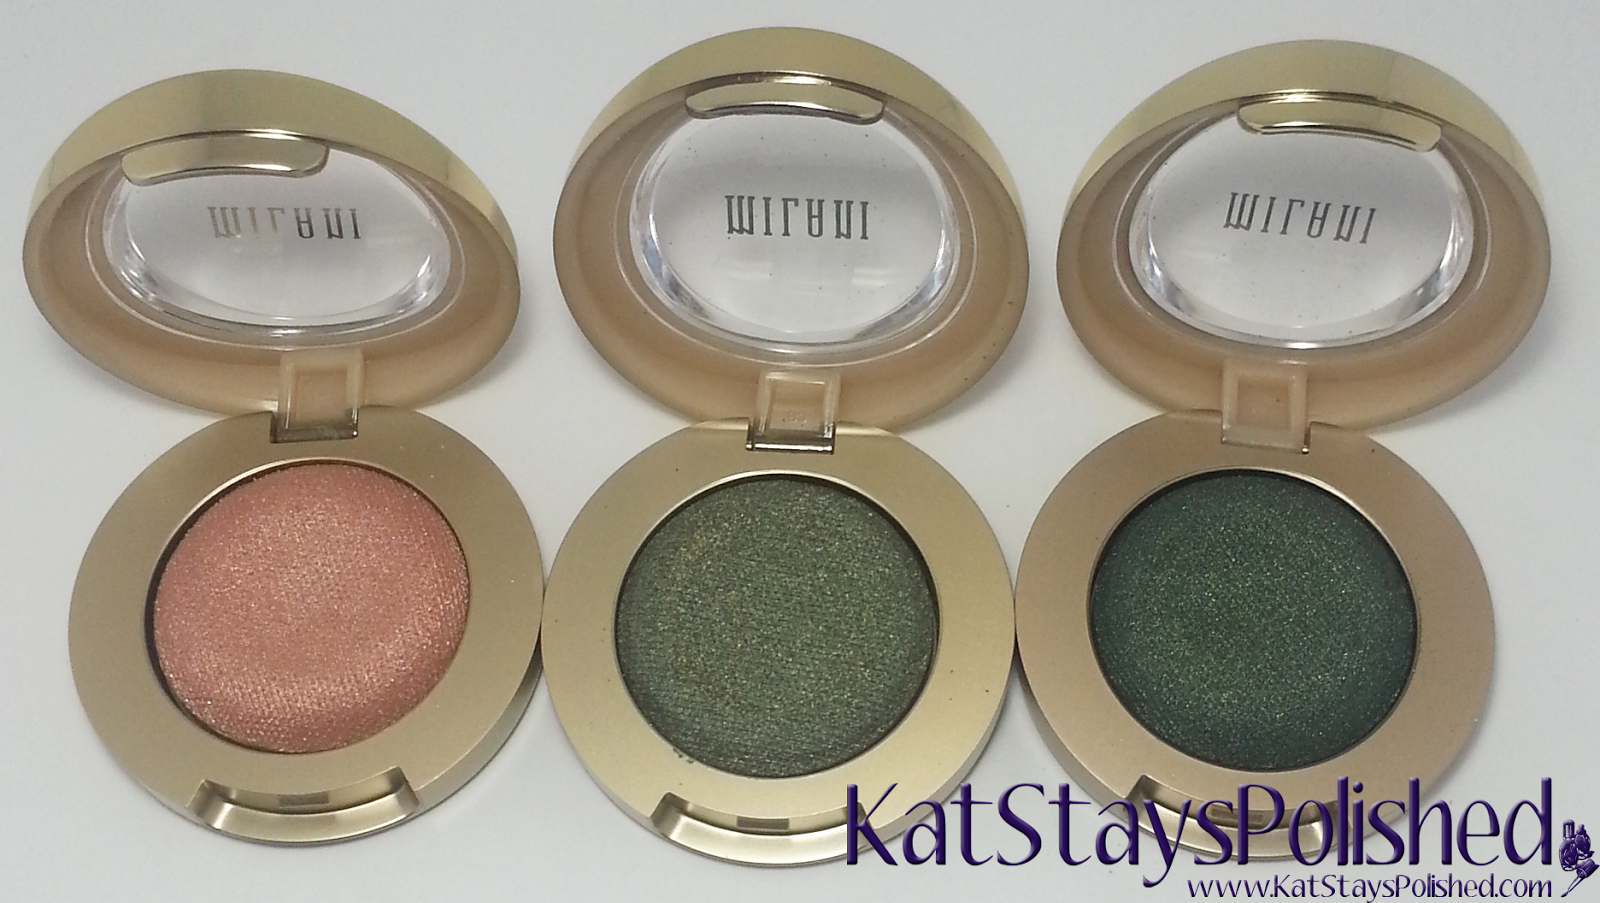 Milani Bella Eyes Gel Powder Eye Shadow - Champagne - Khaki - Emerald | Kat Stays Polished